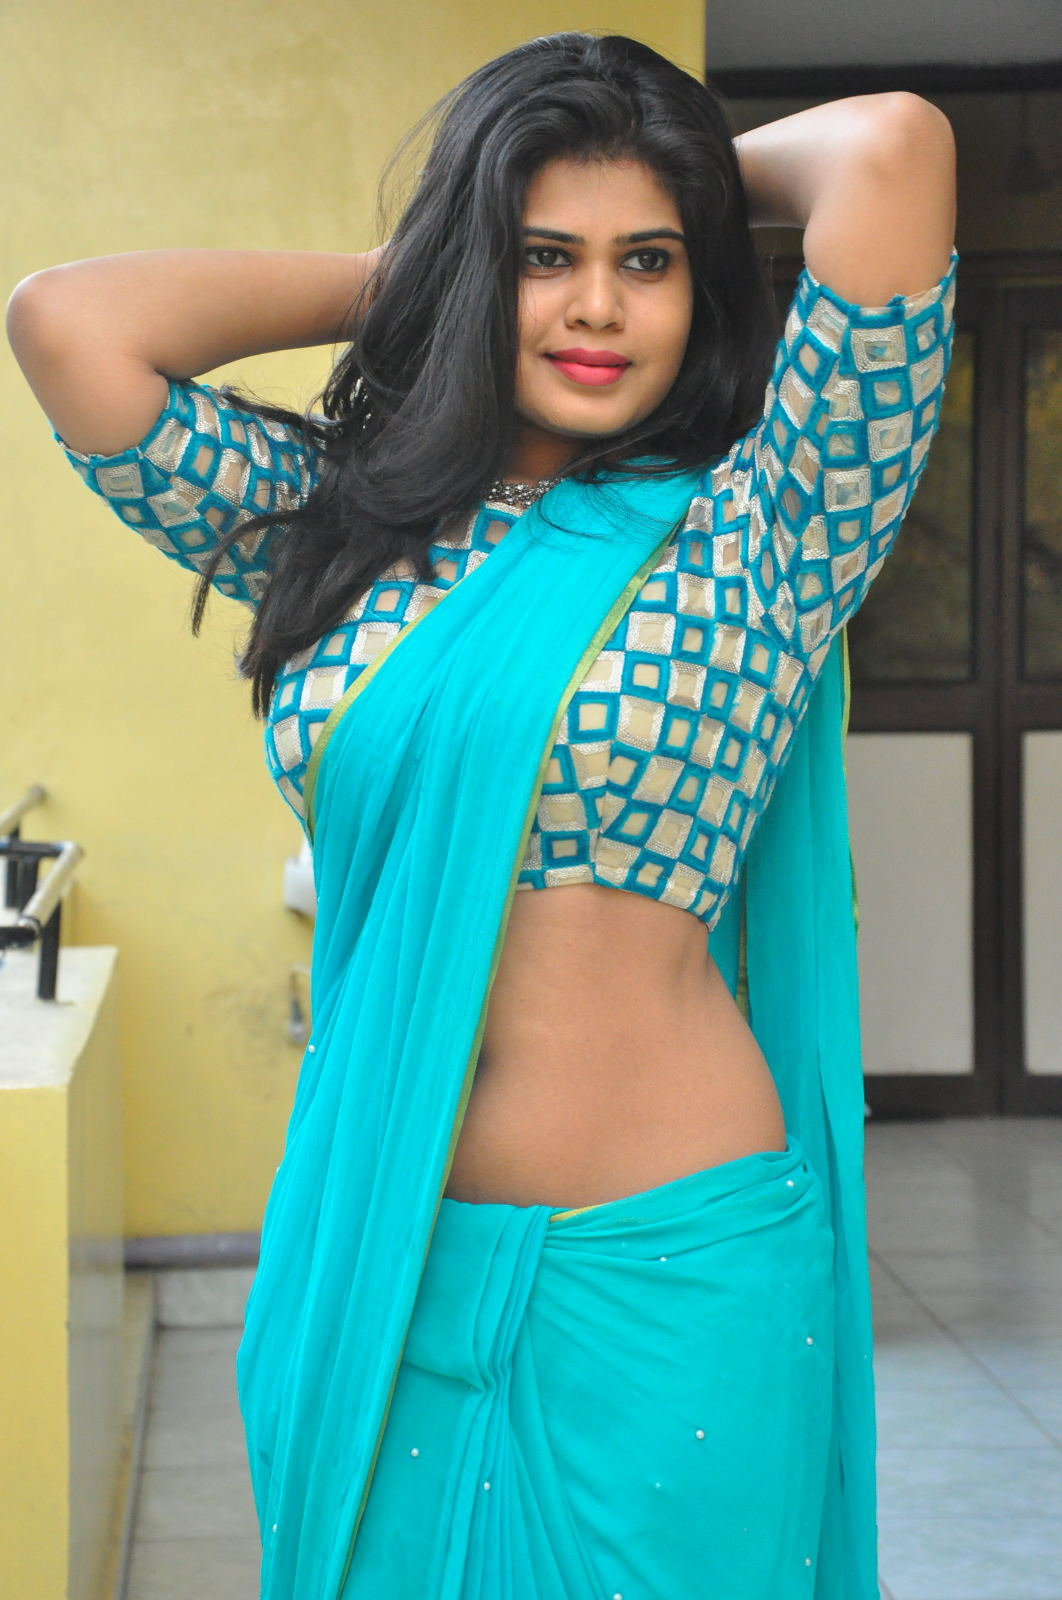 alekhya Brand New Sexy Photo Stills of Alekhya | Tollywood | Actresses Alekhya HOT pics 90